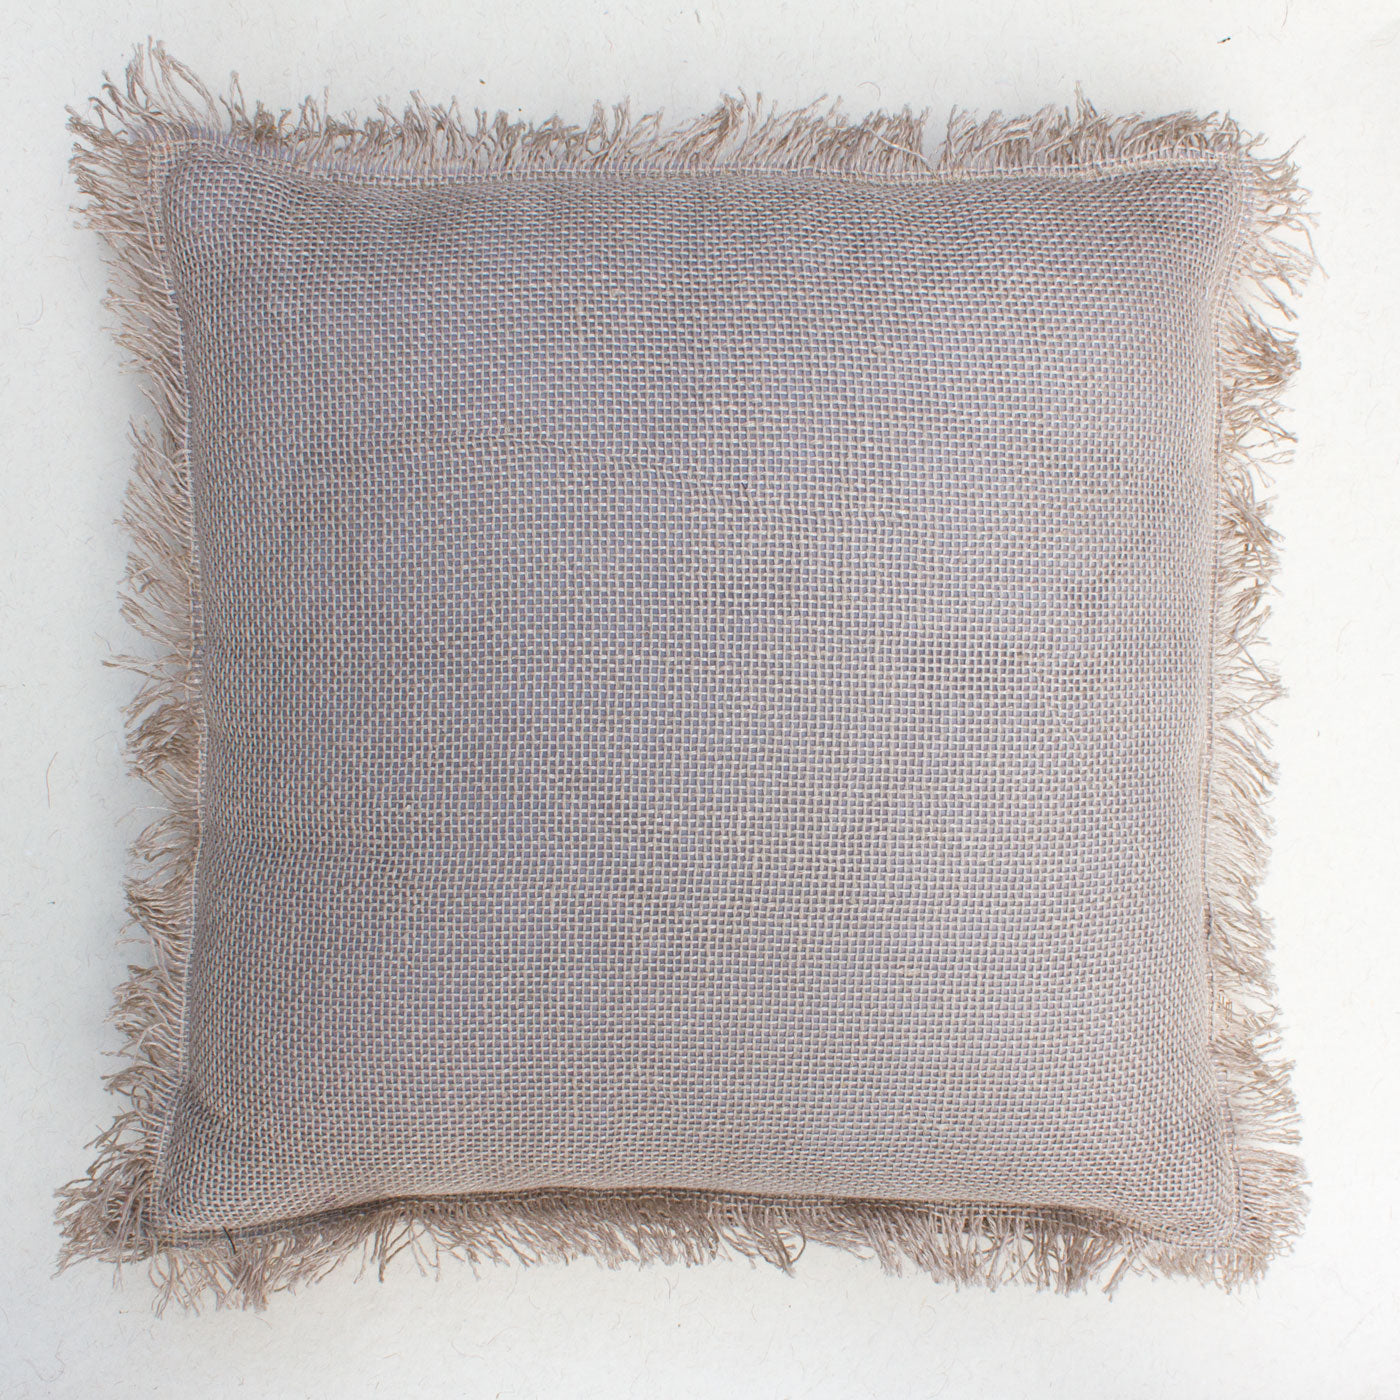 BEIGE BLOSSOM CUSHION COVER